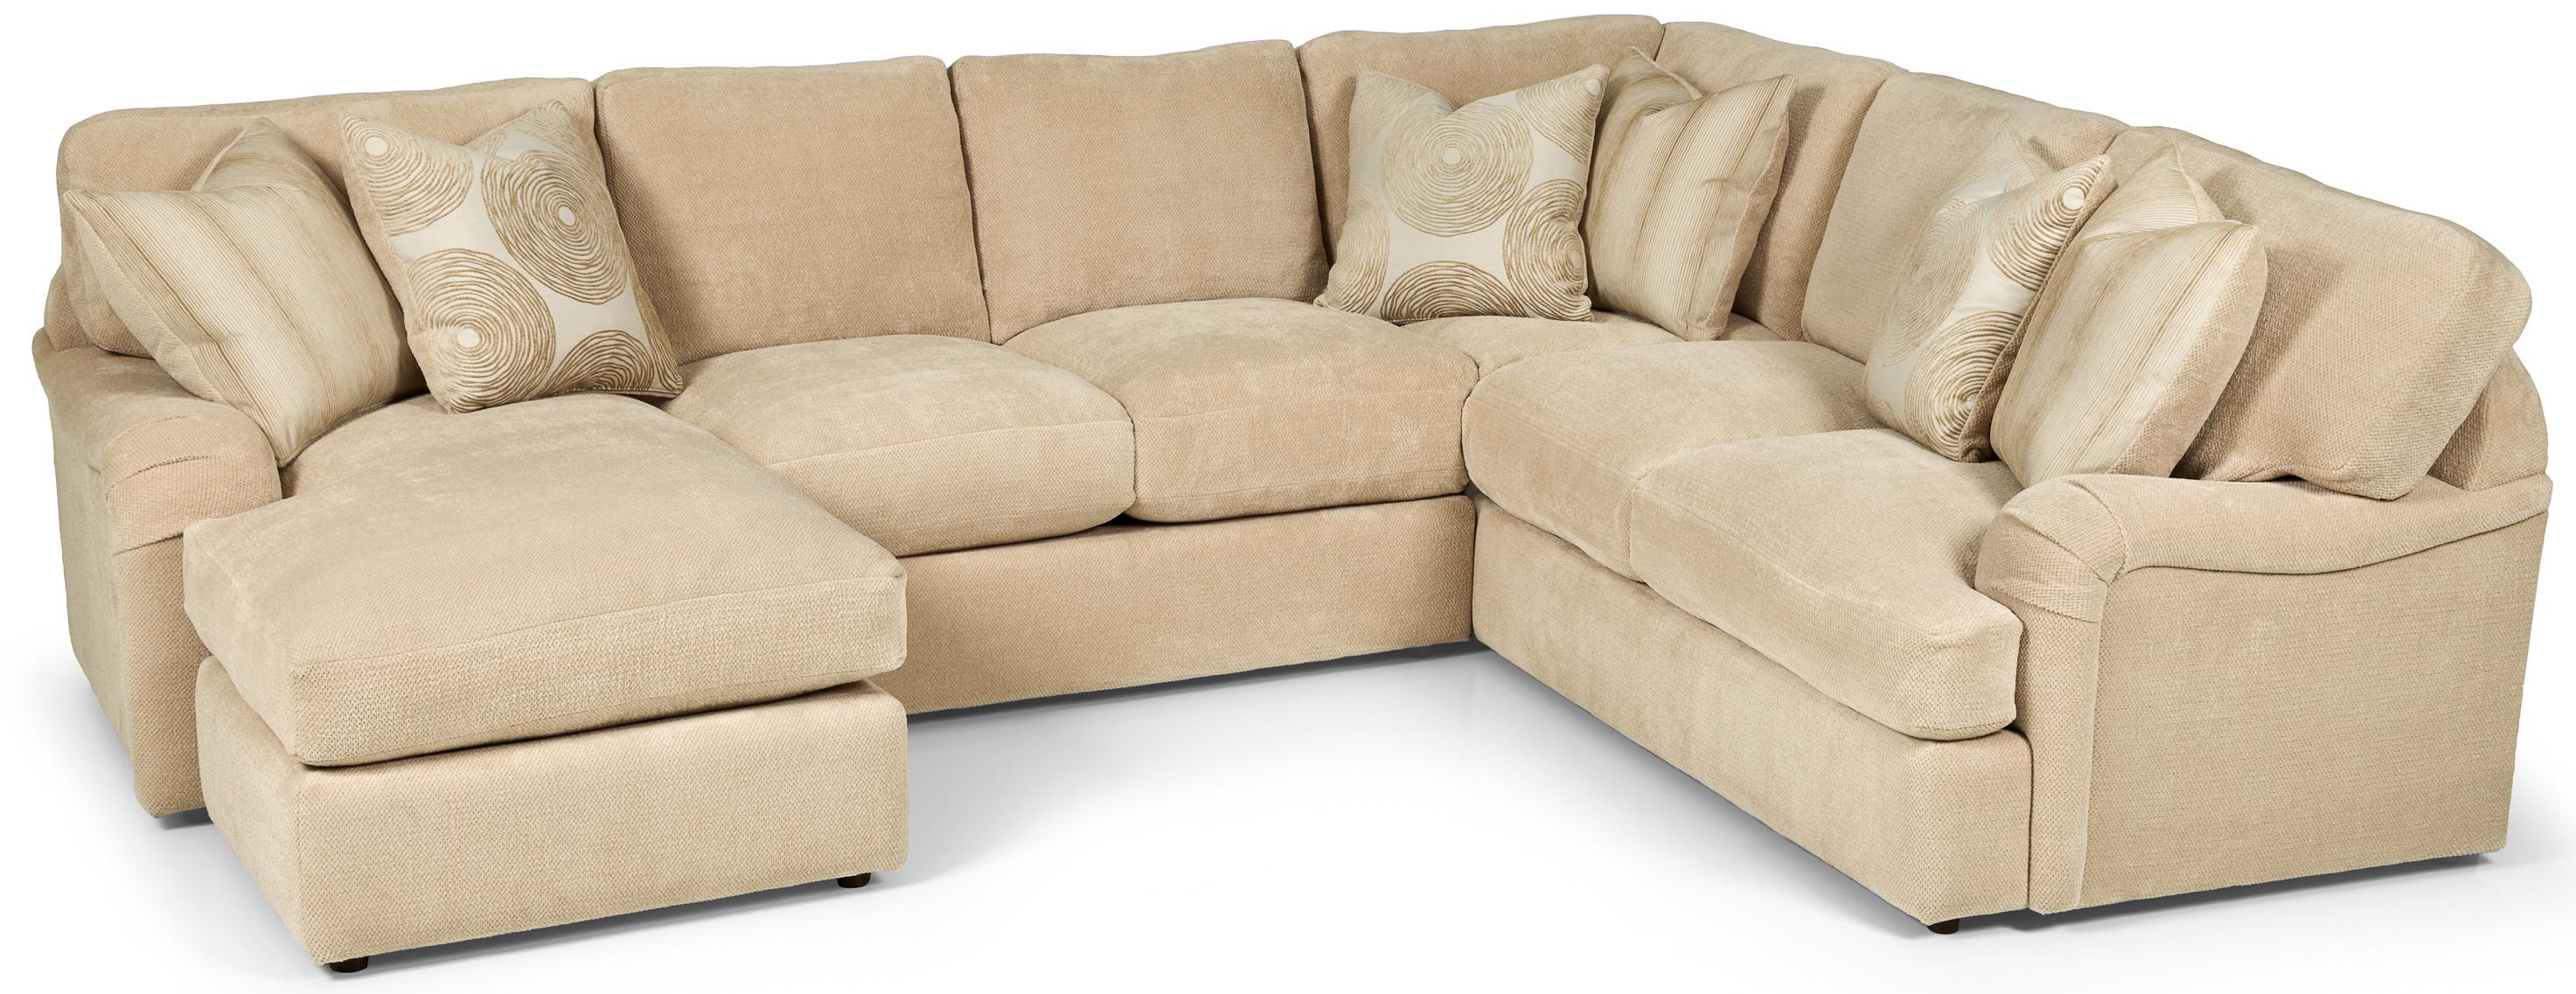 Stanton 232 casual 2 piece sectional sofa with chaise for Albany st germain sectional sofa chaise